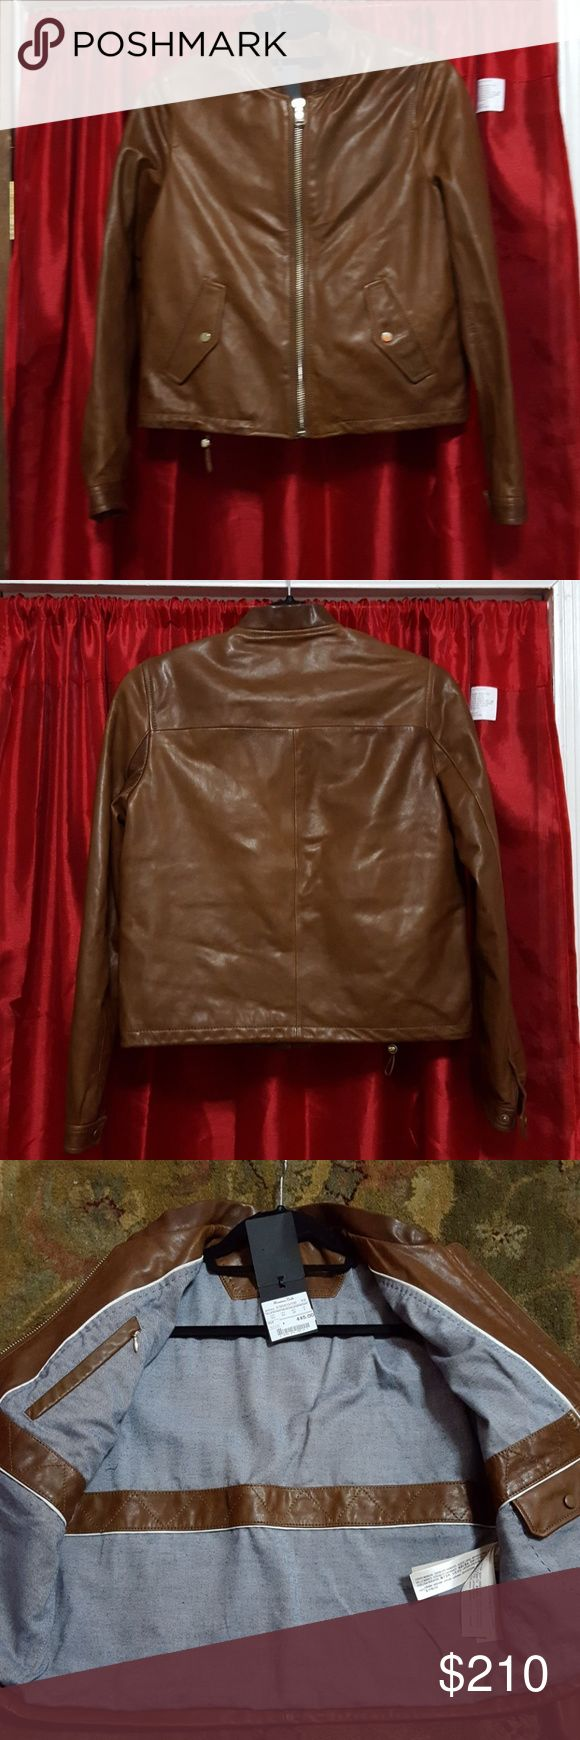 Massimo Dutti Ladies leather jacket Brown Massimo Dutti Ladies butter soft leather jacket Massimo Dutti Jackets & Coats Utility Jackets